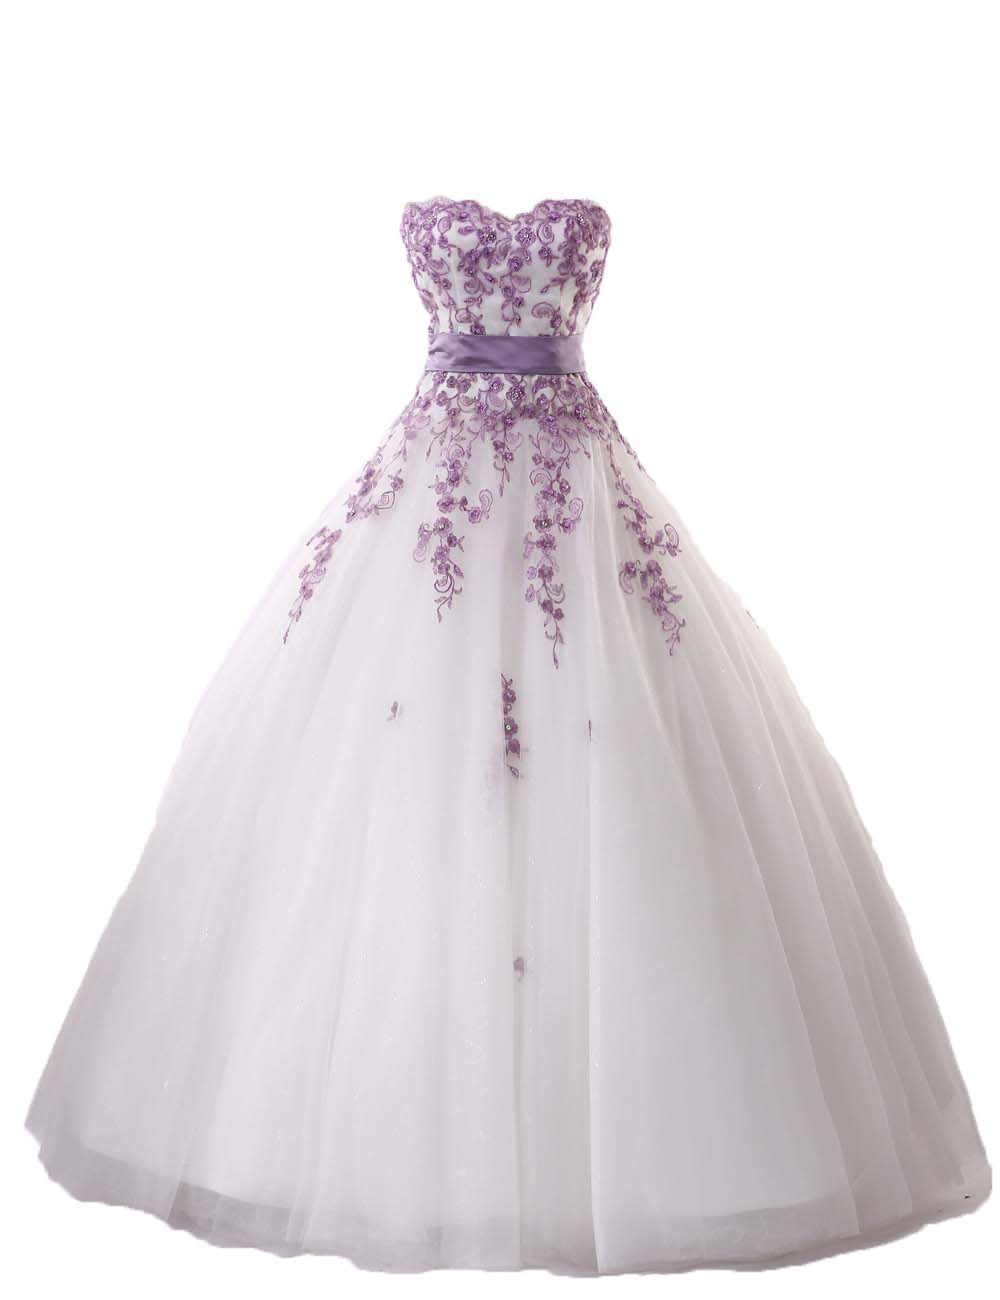 Aliexpress Buy New Elegant Lilac Lace Wedding Dress 2016 Sweetheart Ball Gown Bridal Dresses Up With Bow Vestido De Noiva From